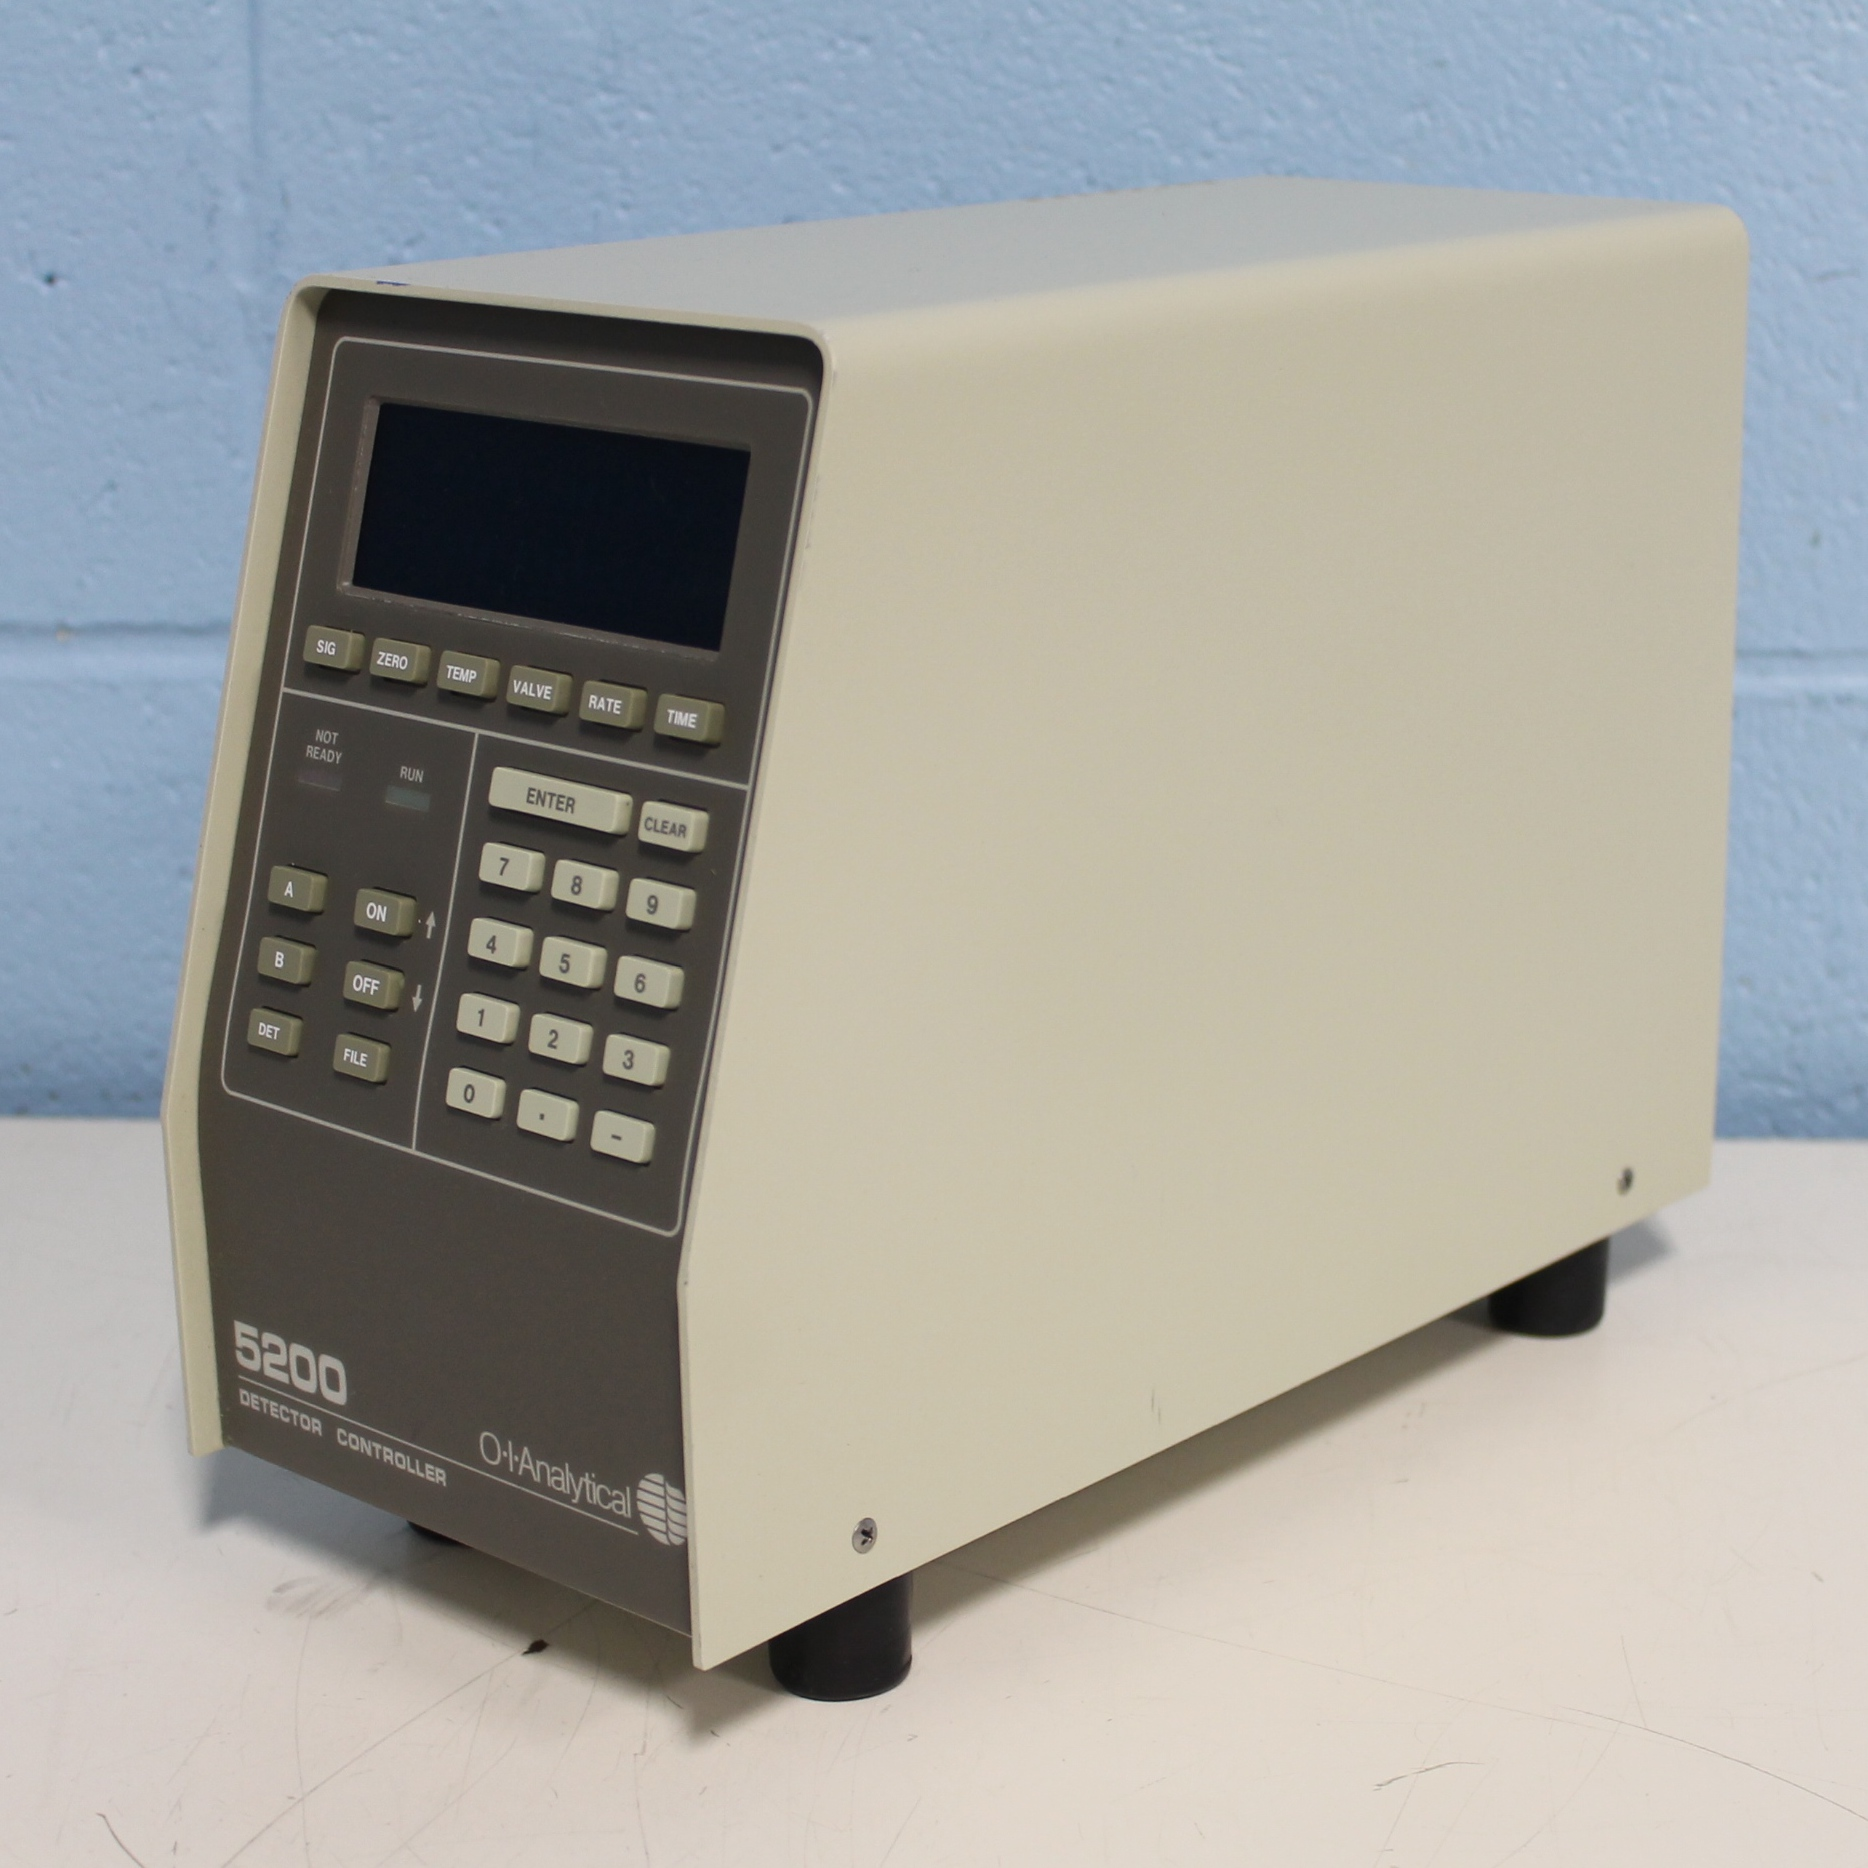 O.I.Analytical 5200 Detector Controller Image